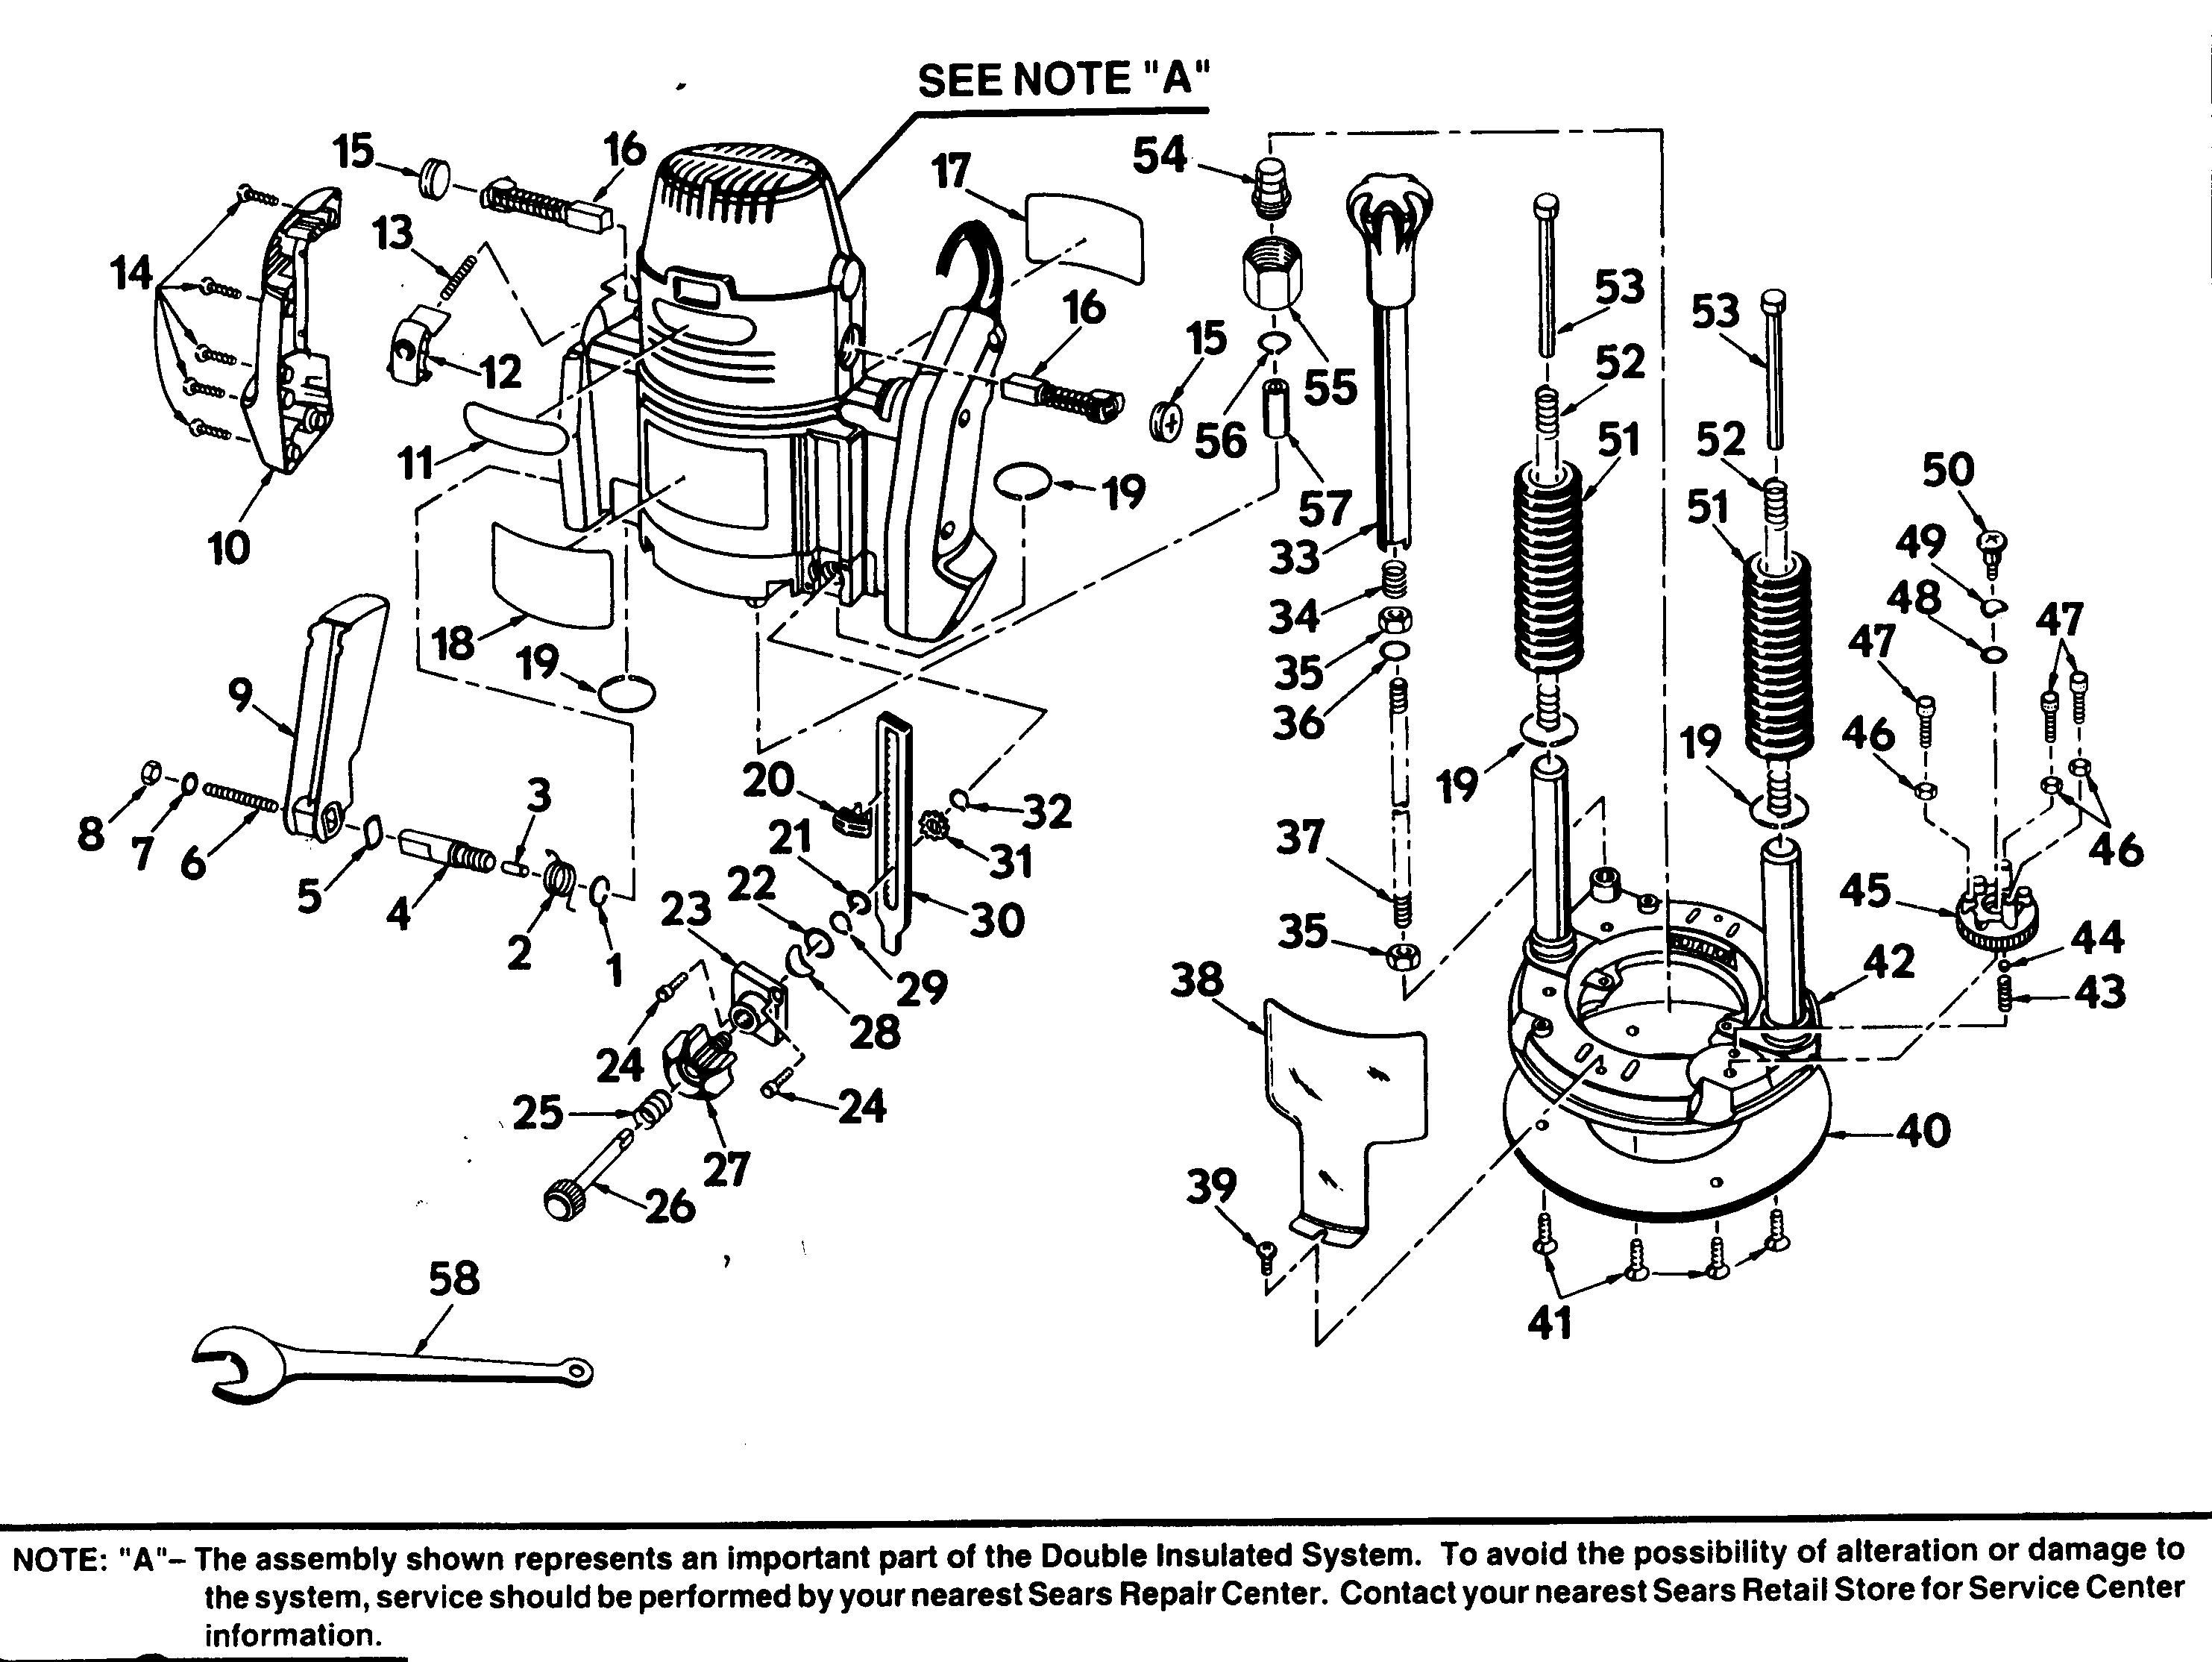 Craftsman Router Wiring Diagram. craftsman wiring router